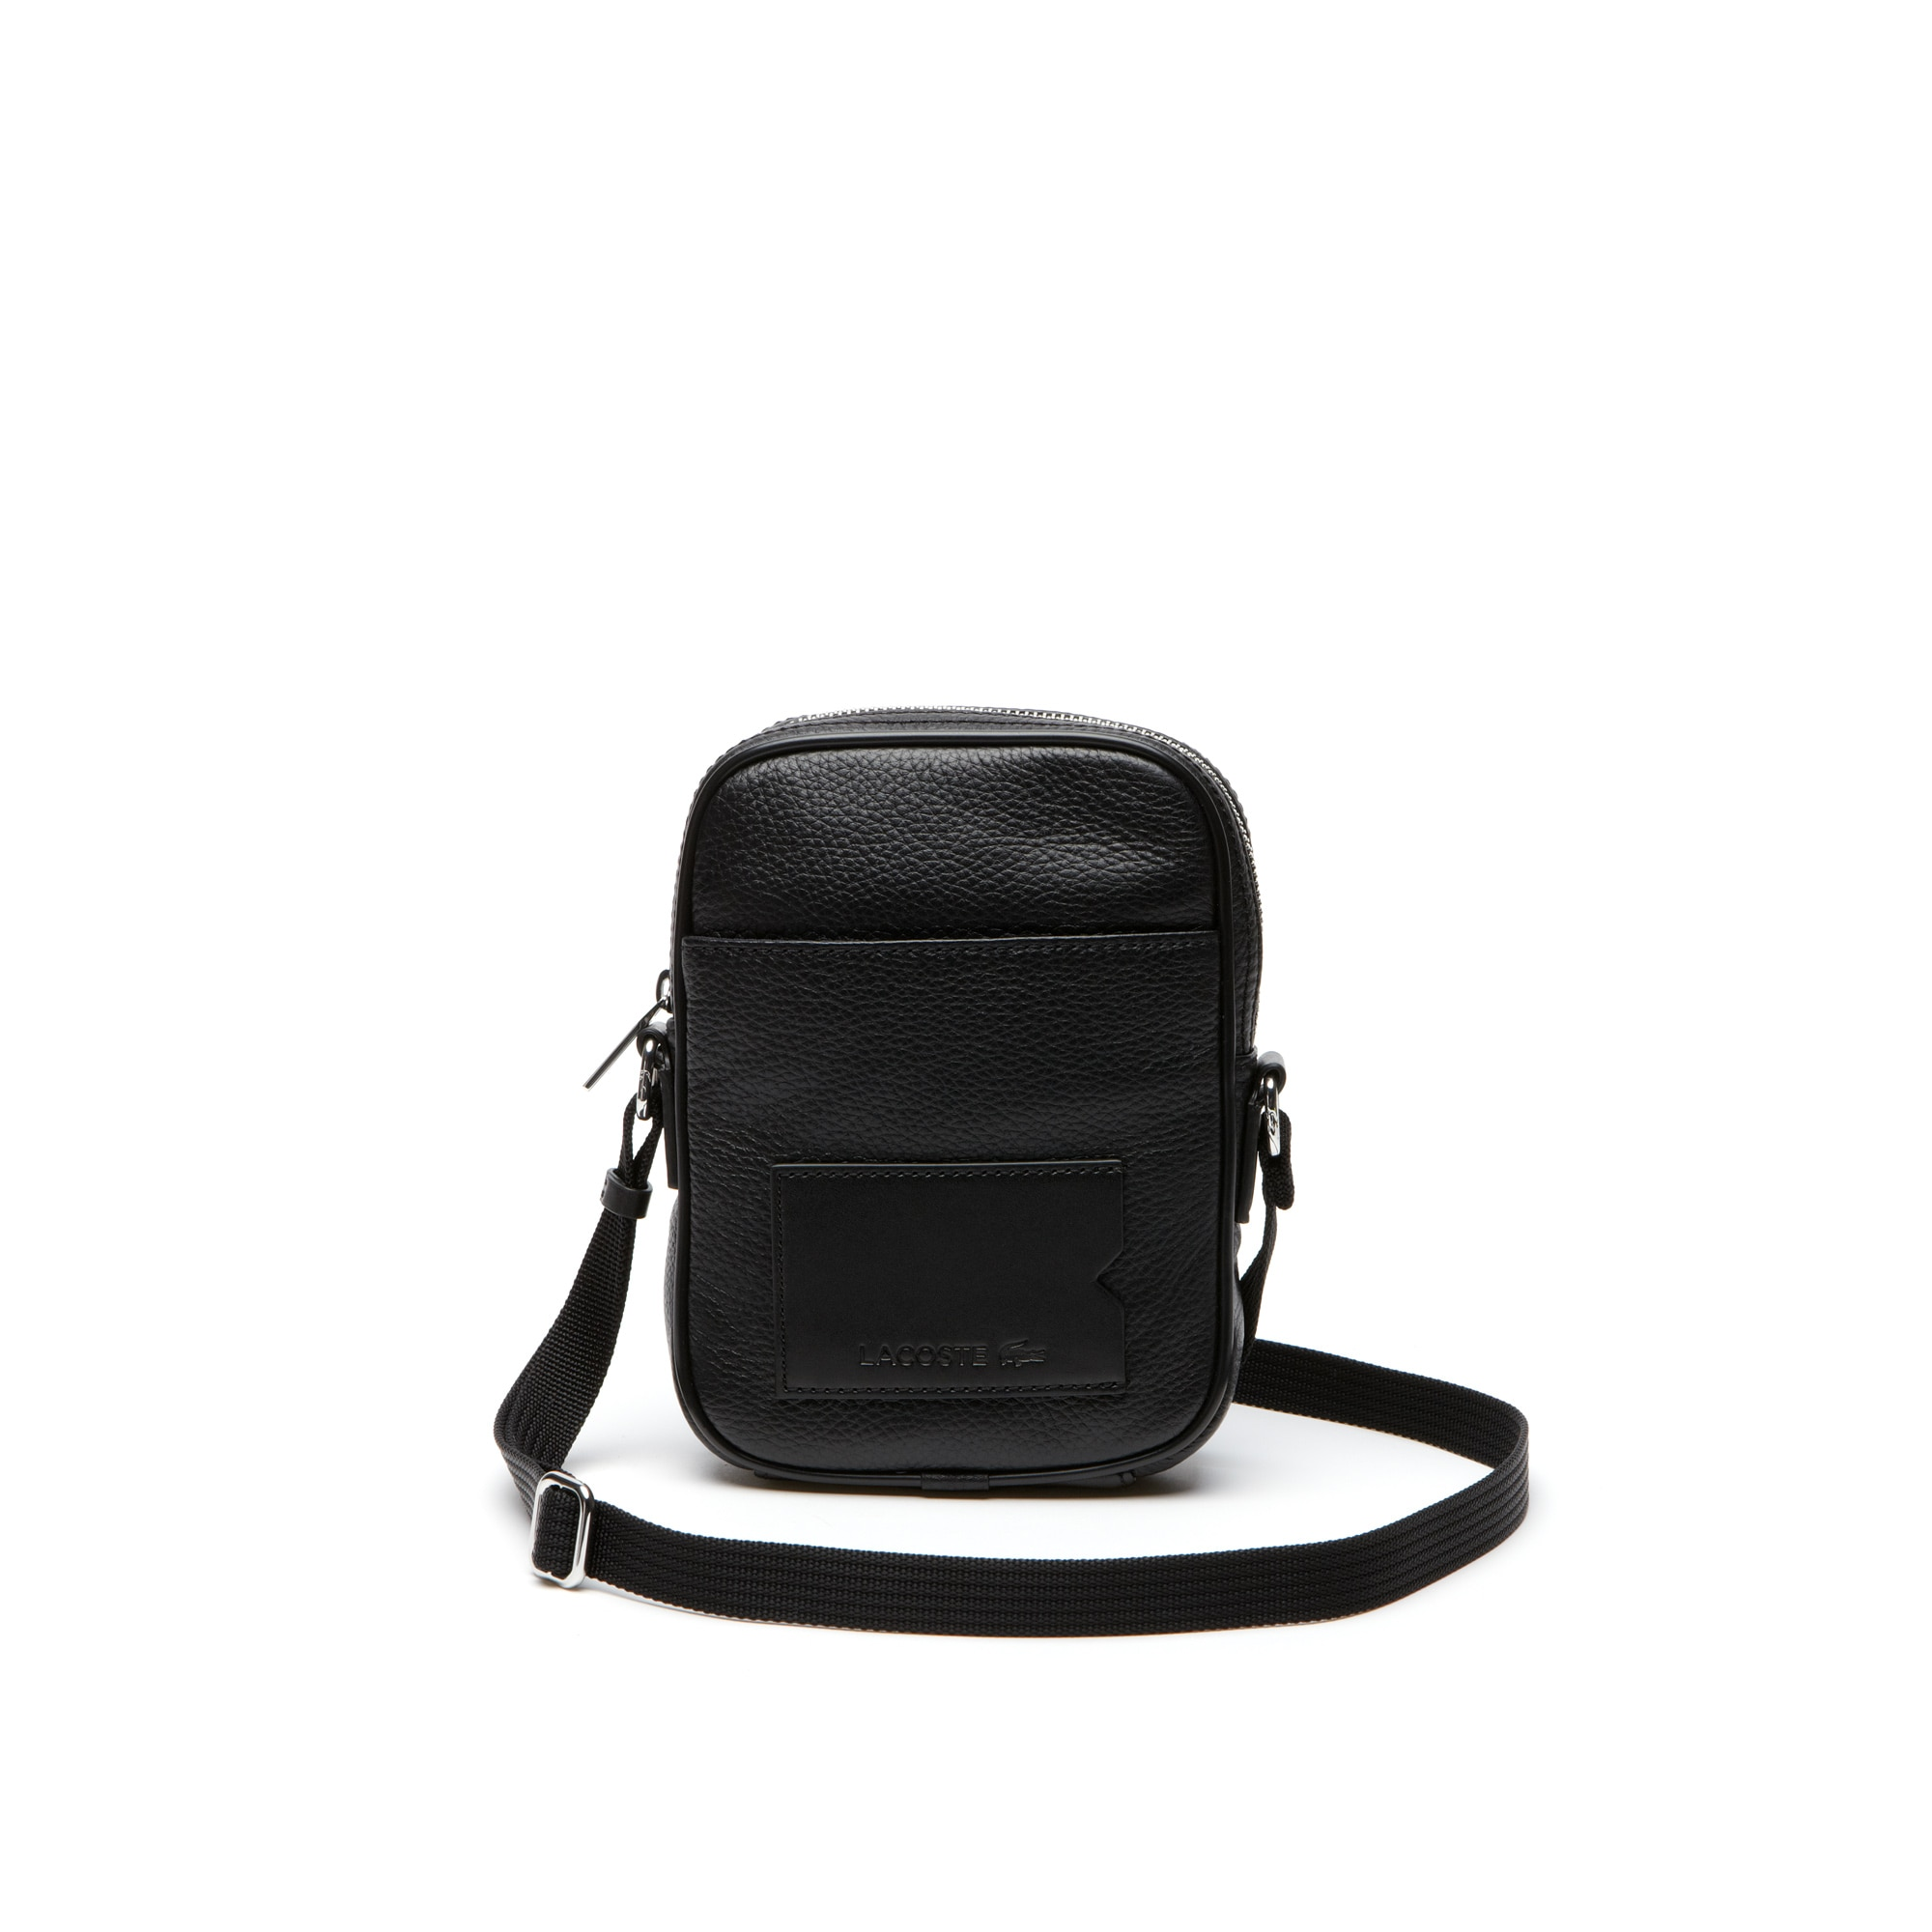 Men's Classic Premium shoulder bag in monochrome leather